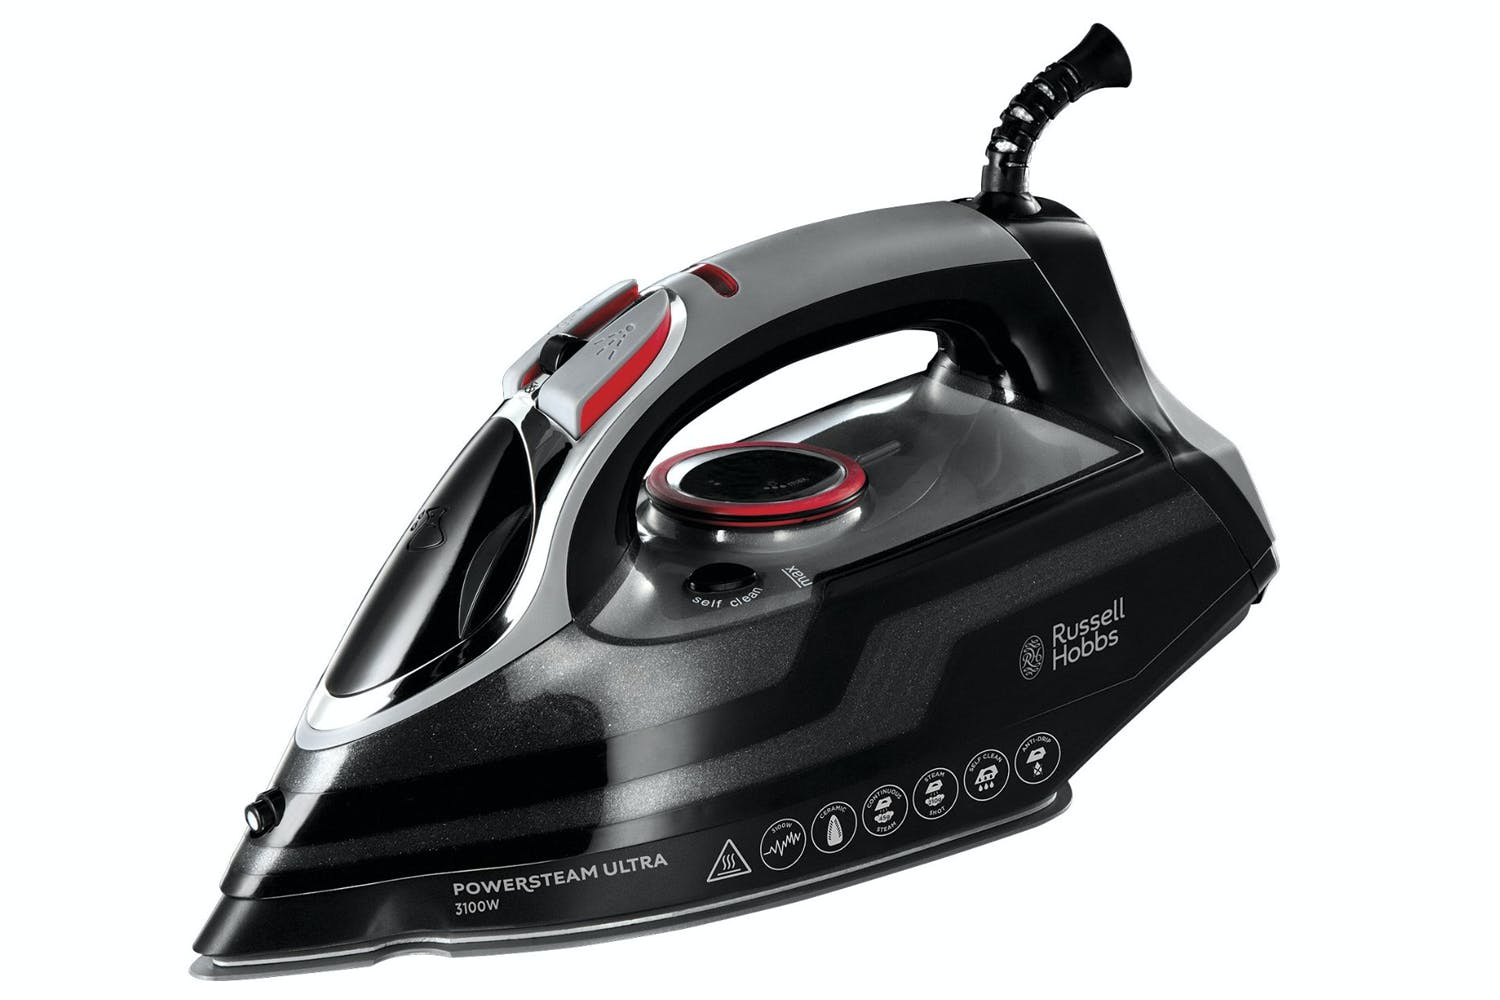 Russell Hobbs Powersteam Ultra Iron | 20630